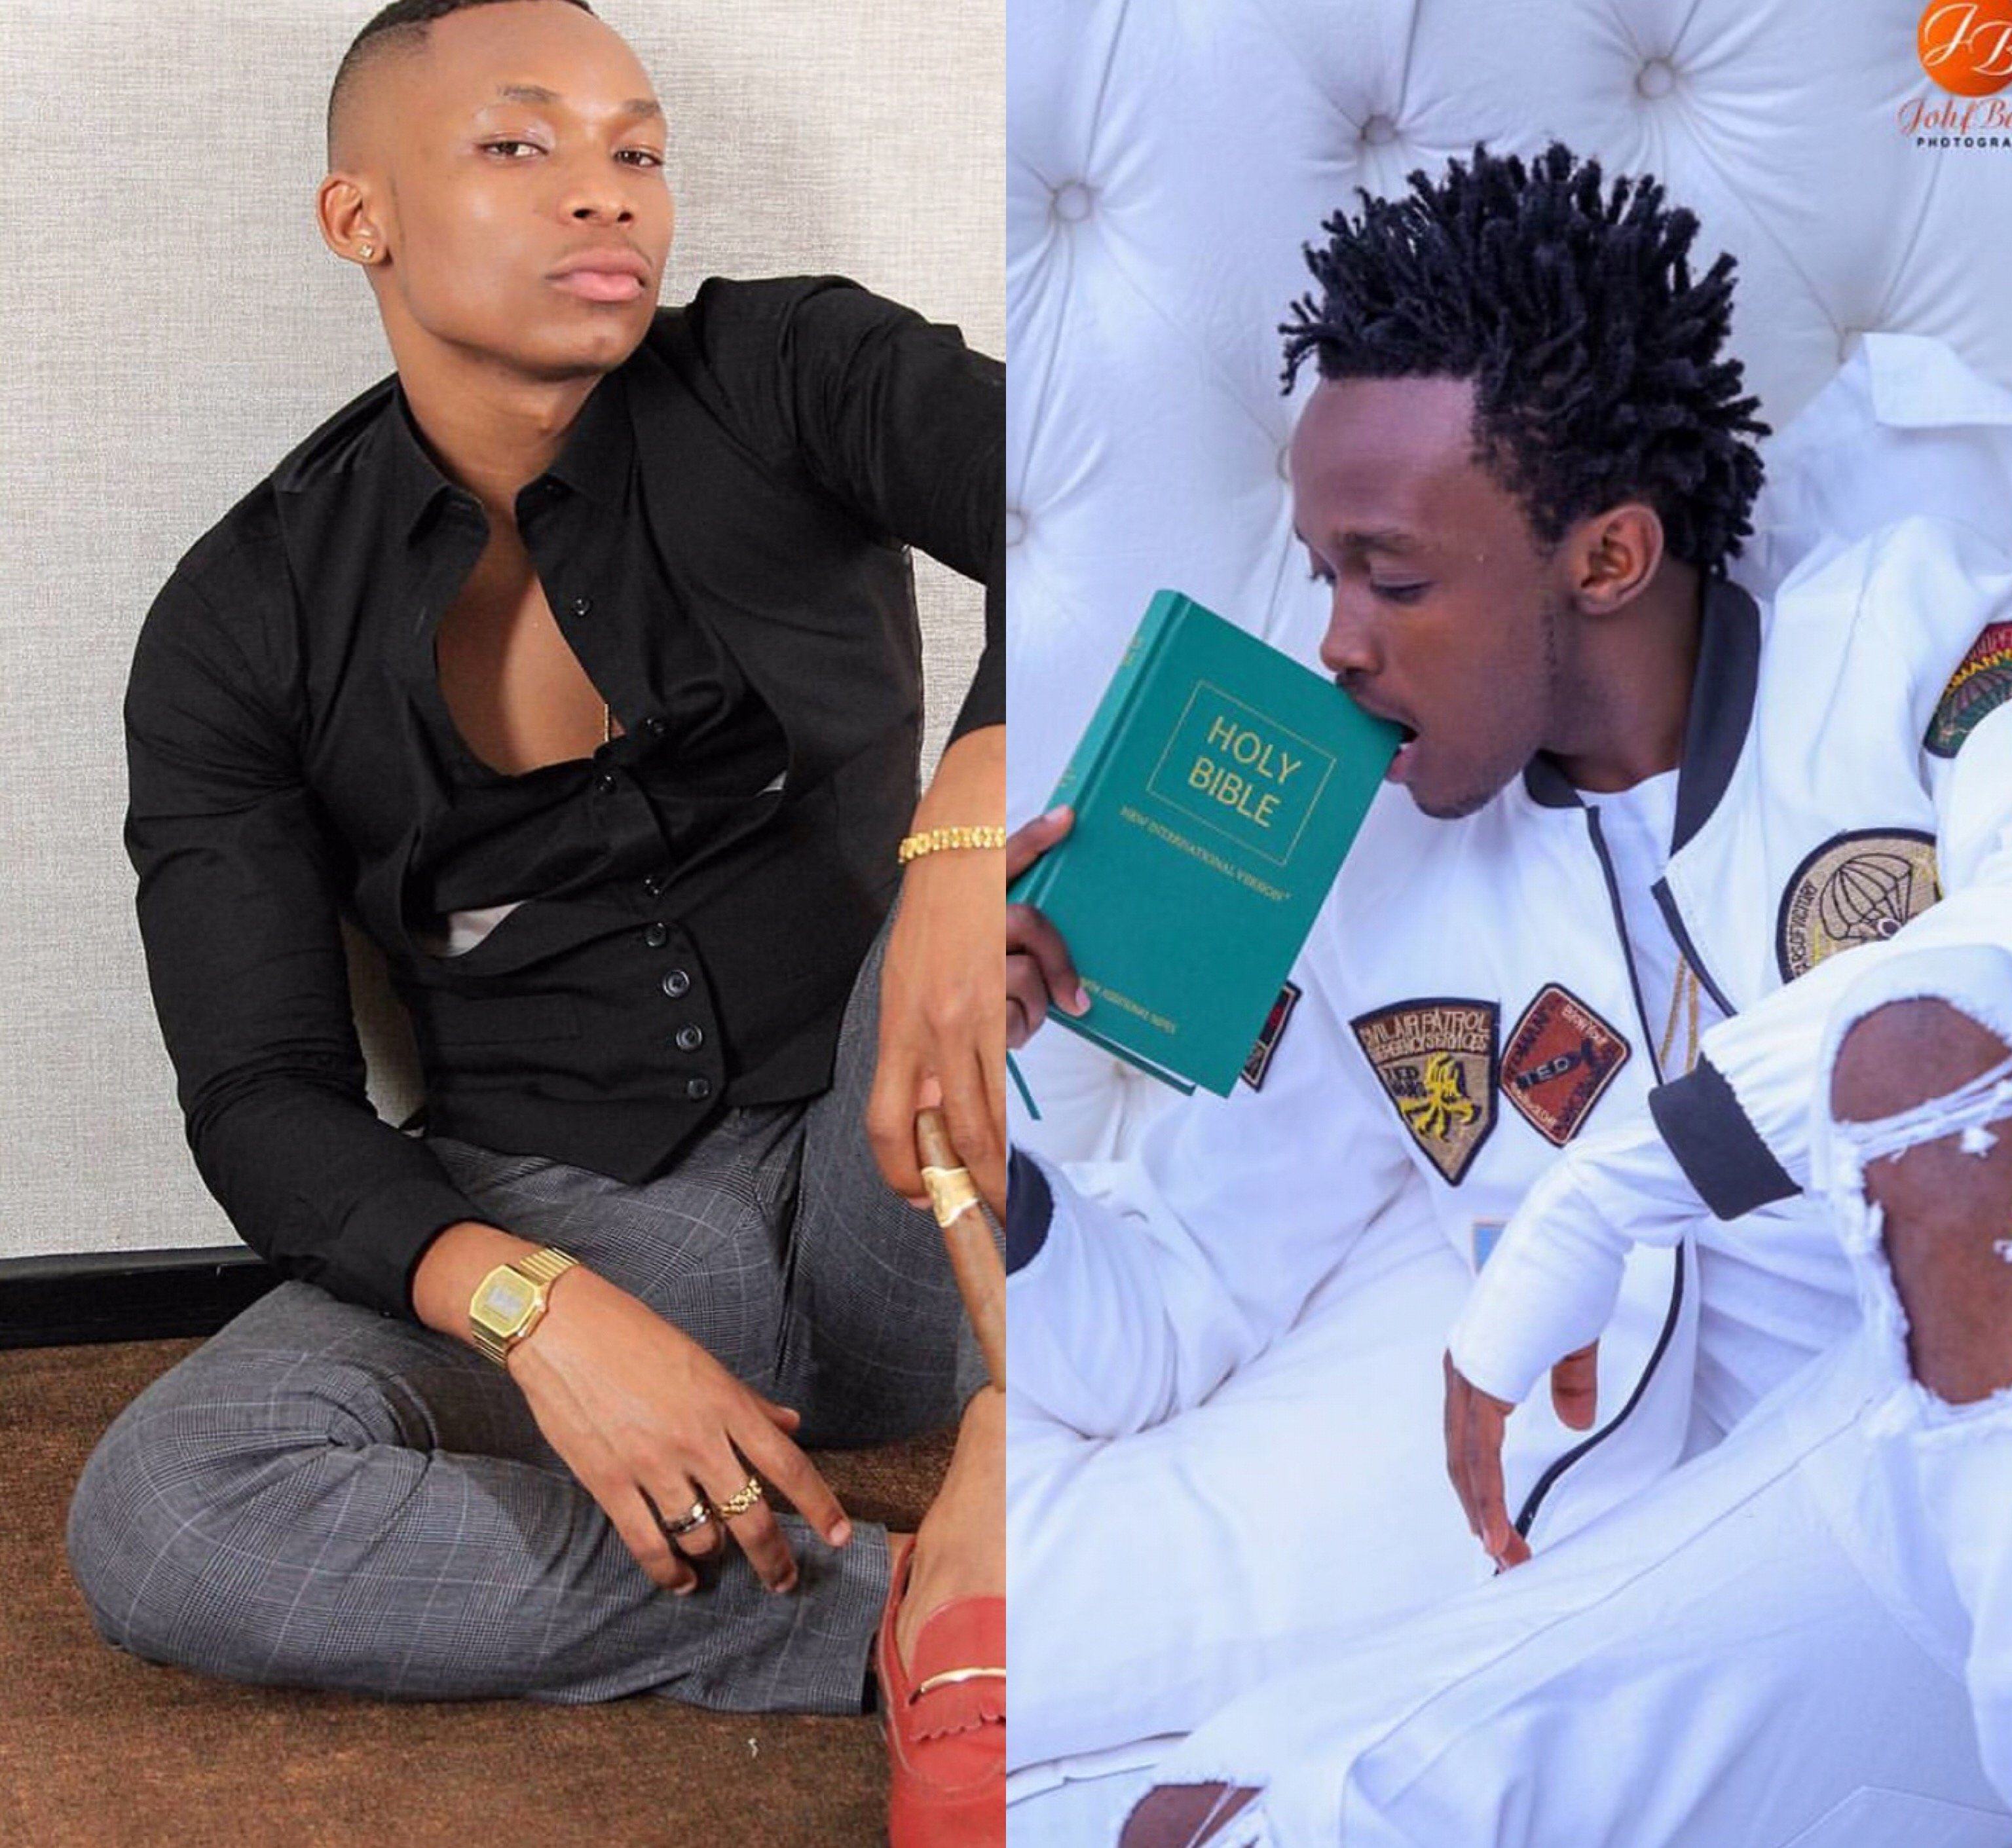 Zero chills: Otile Brown throws shade at Bahati's new song and asks him to get some vocal training